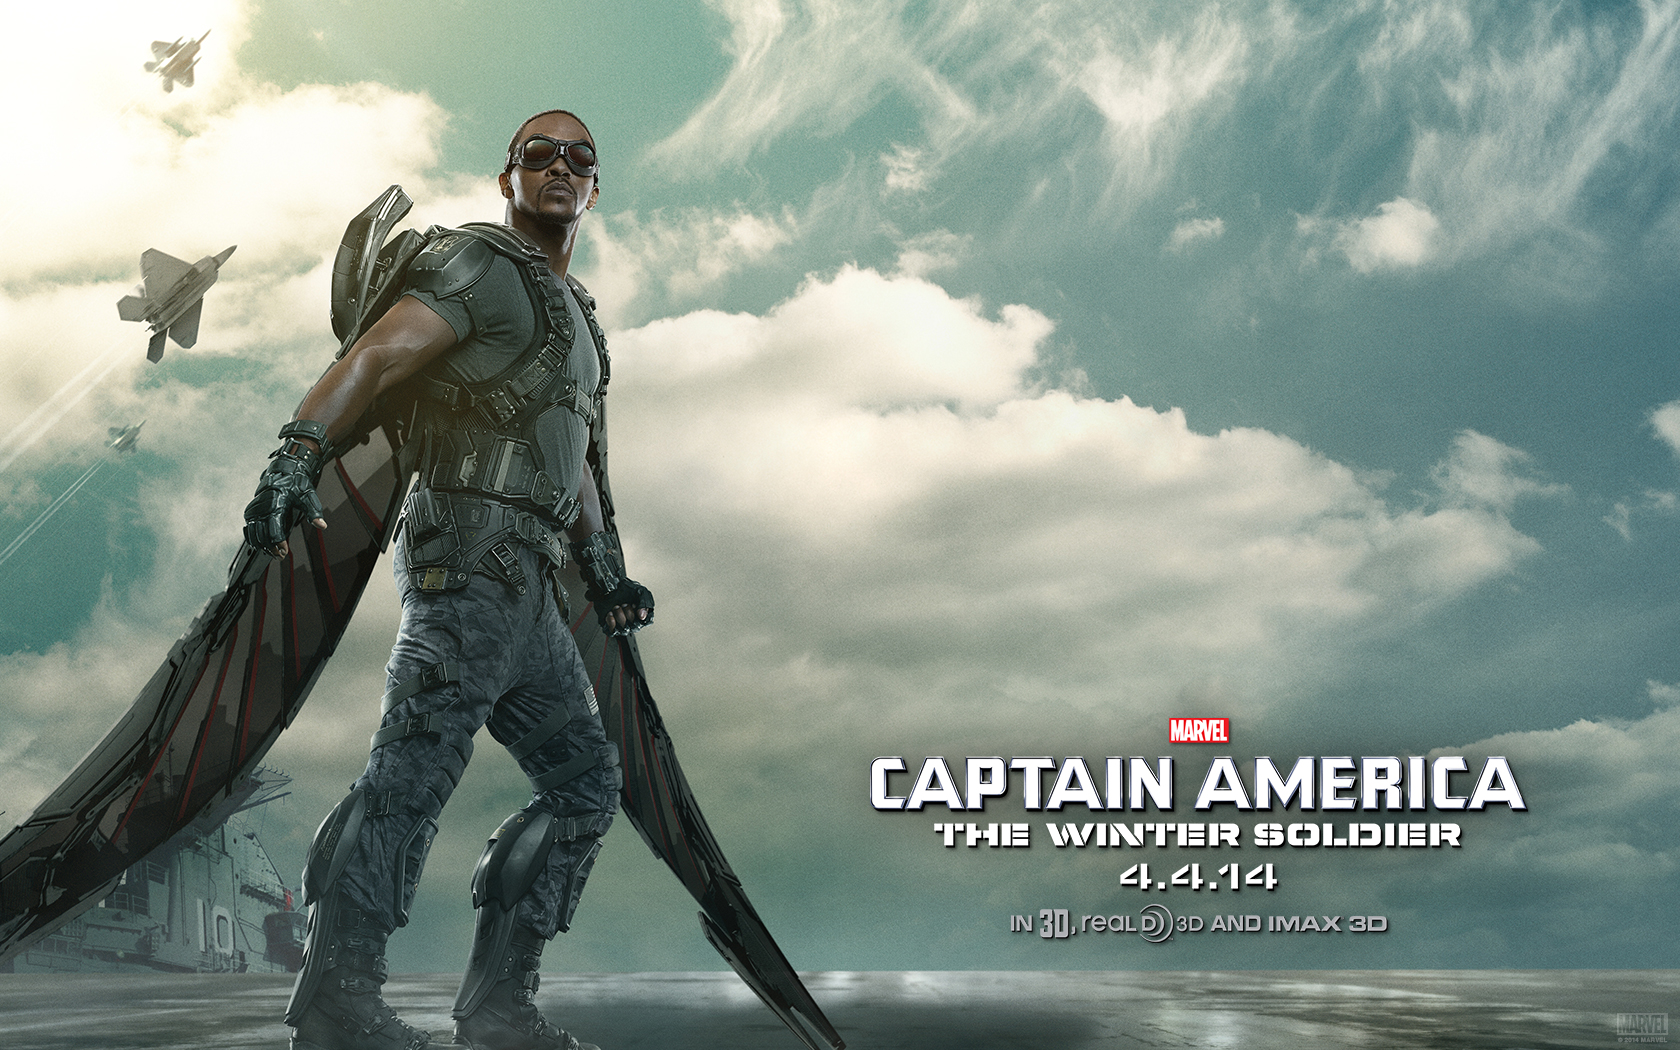 Anthony-Mackie-as-The-Falcon-%E2%80%93-Captain-America-The-Winter-Soldier-wallpaper-wpc5802188